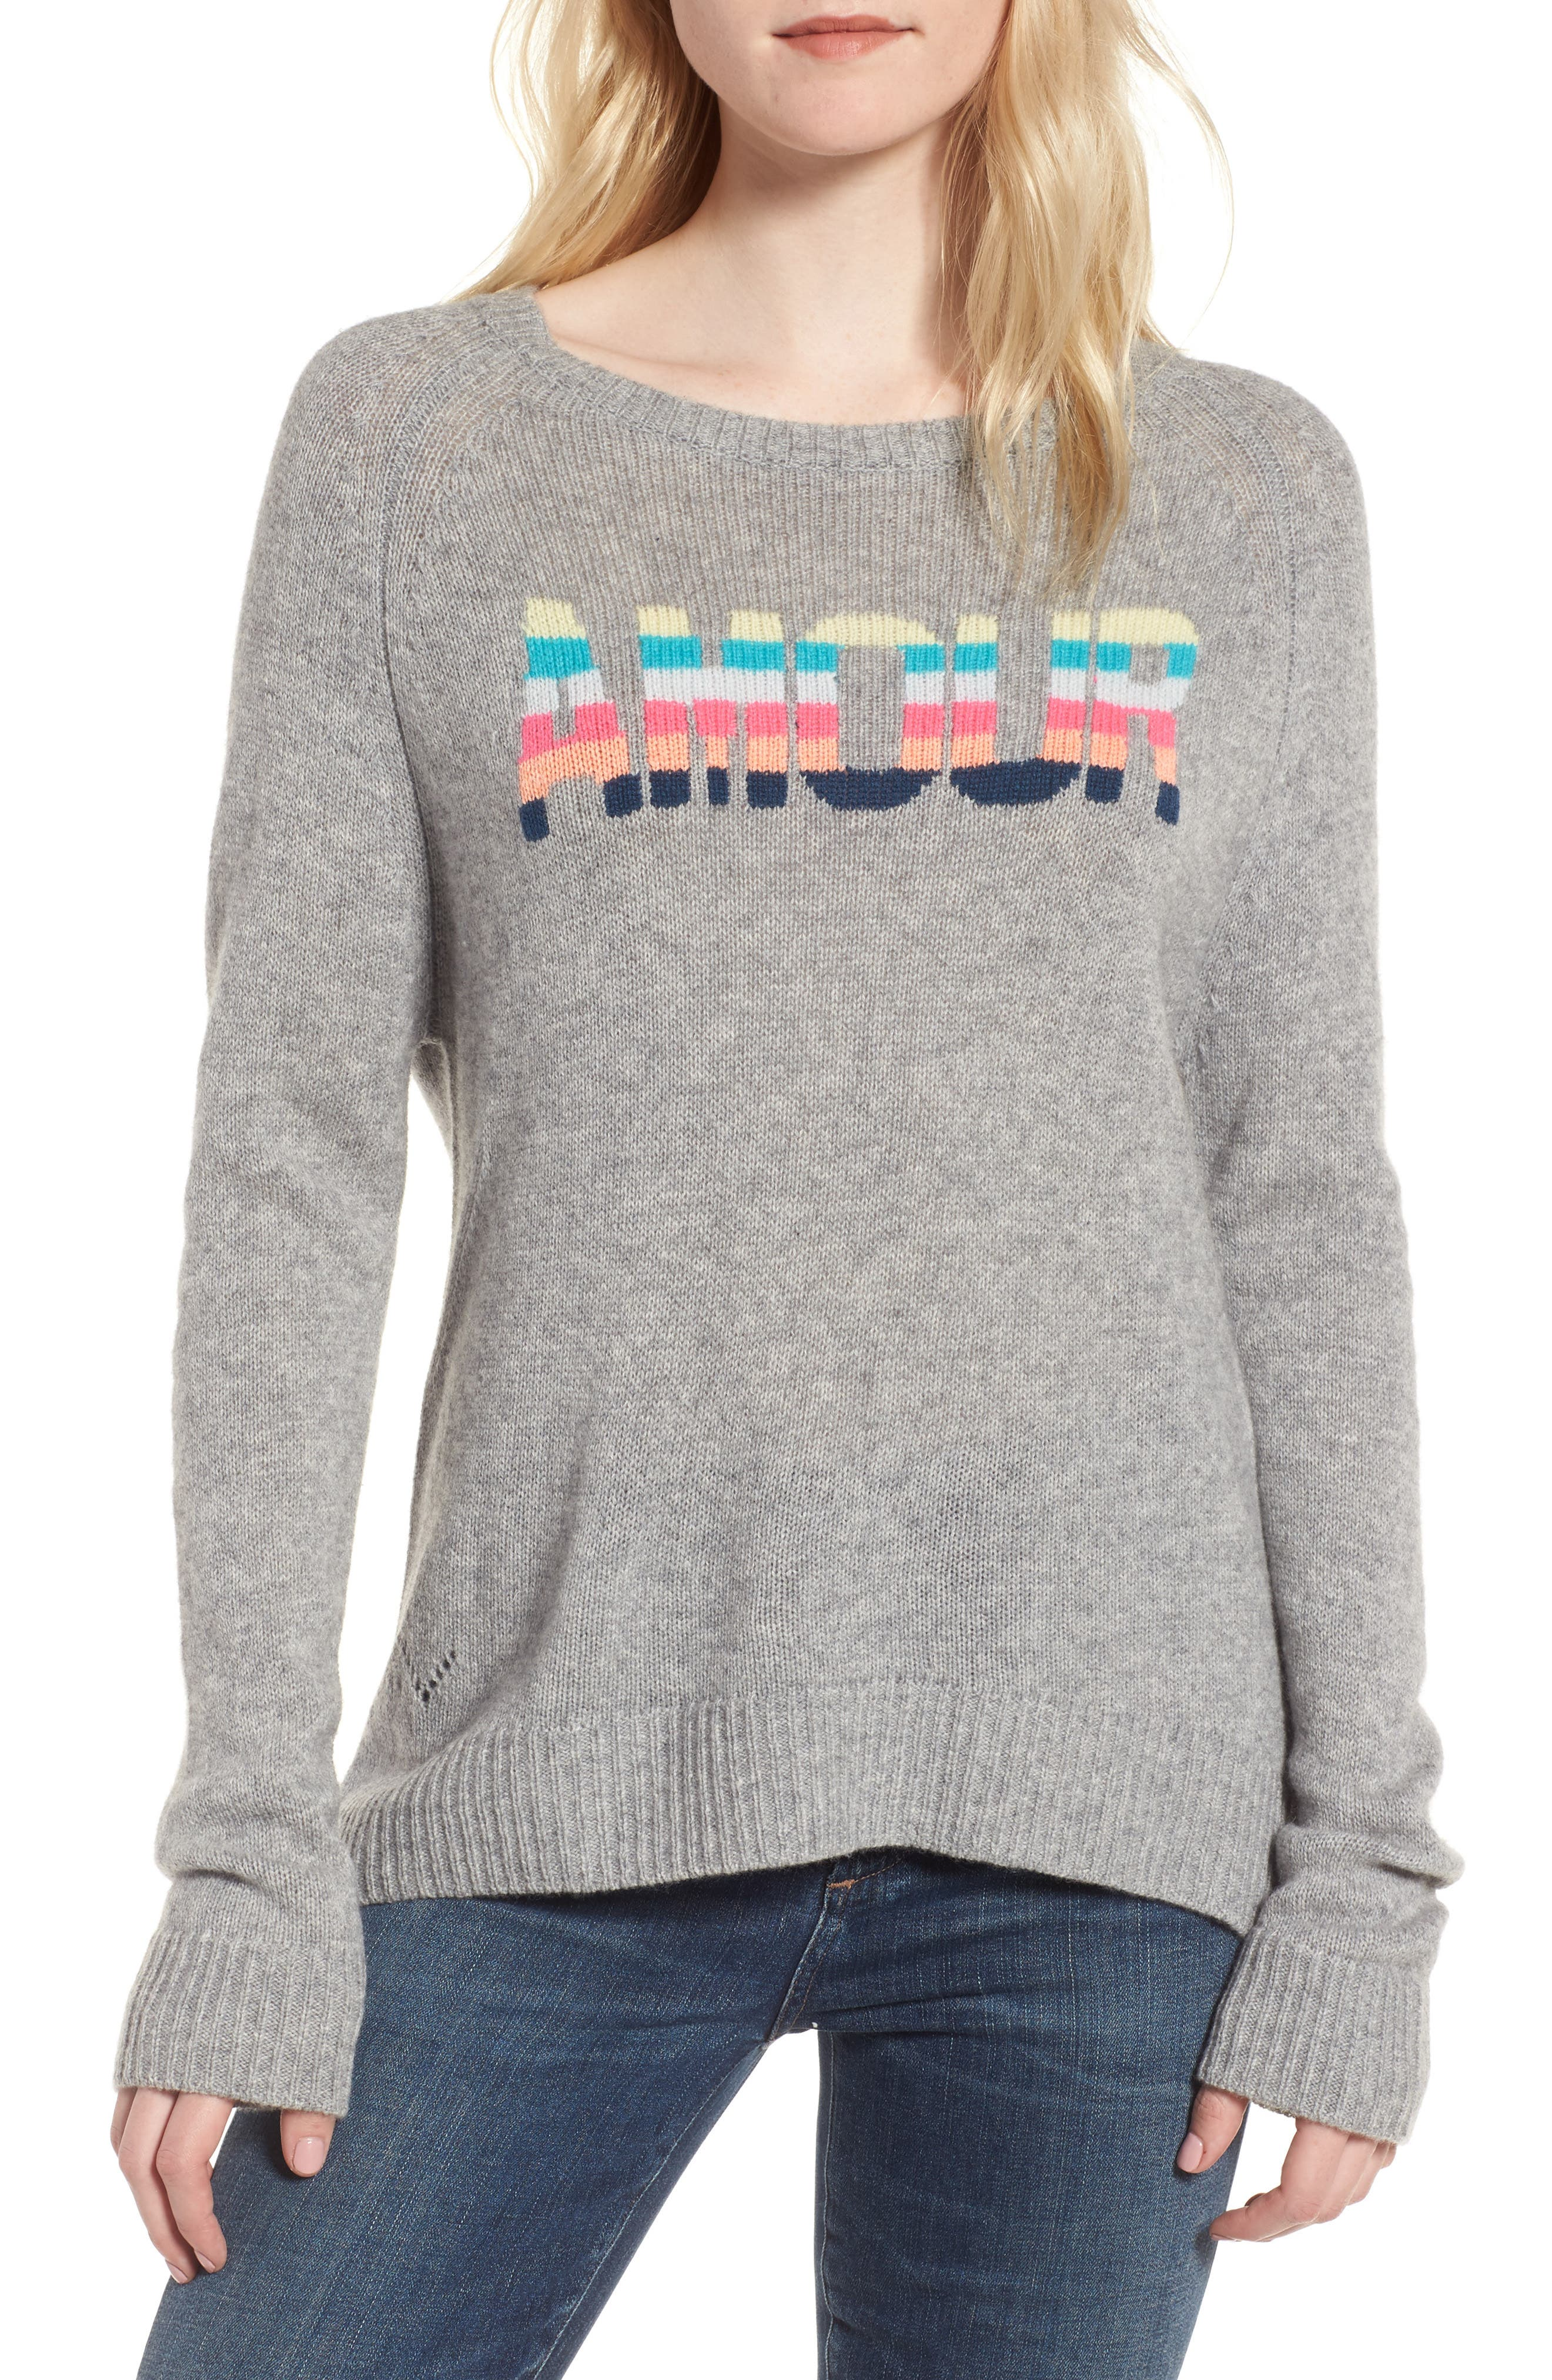 Baly Bis Cashmere Sweater,                         Main,                         color, 078